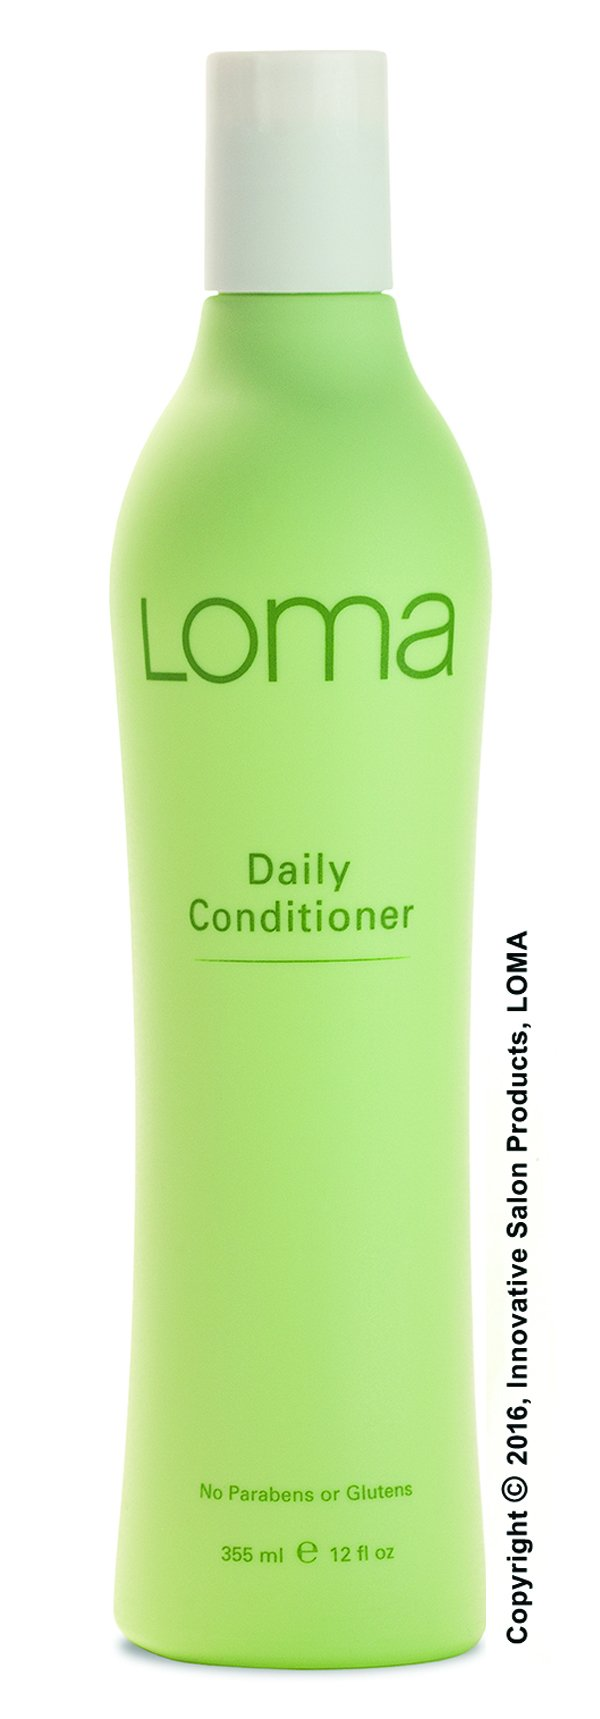 Loma Hair Care Daily Conditioner 12 Fl Oz